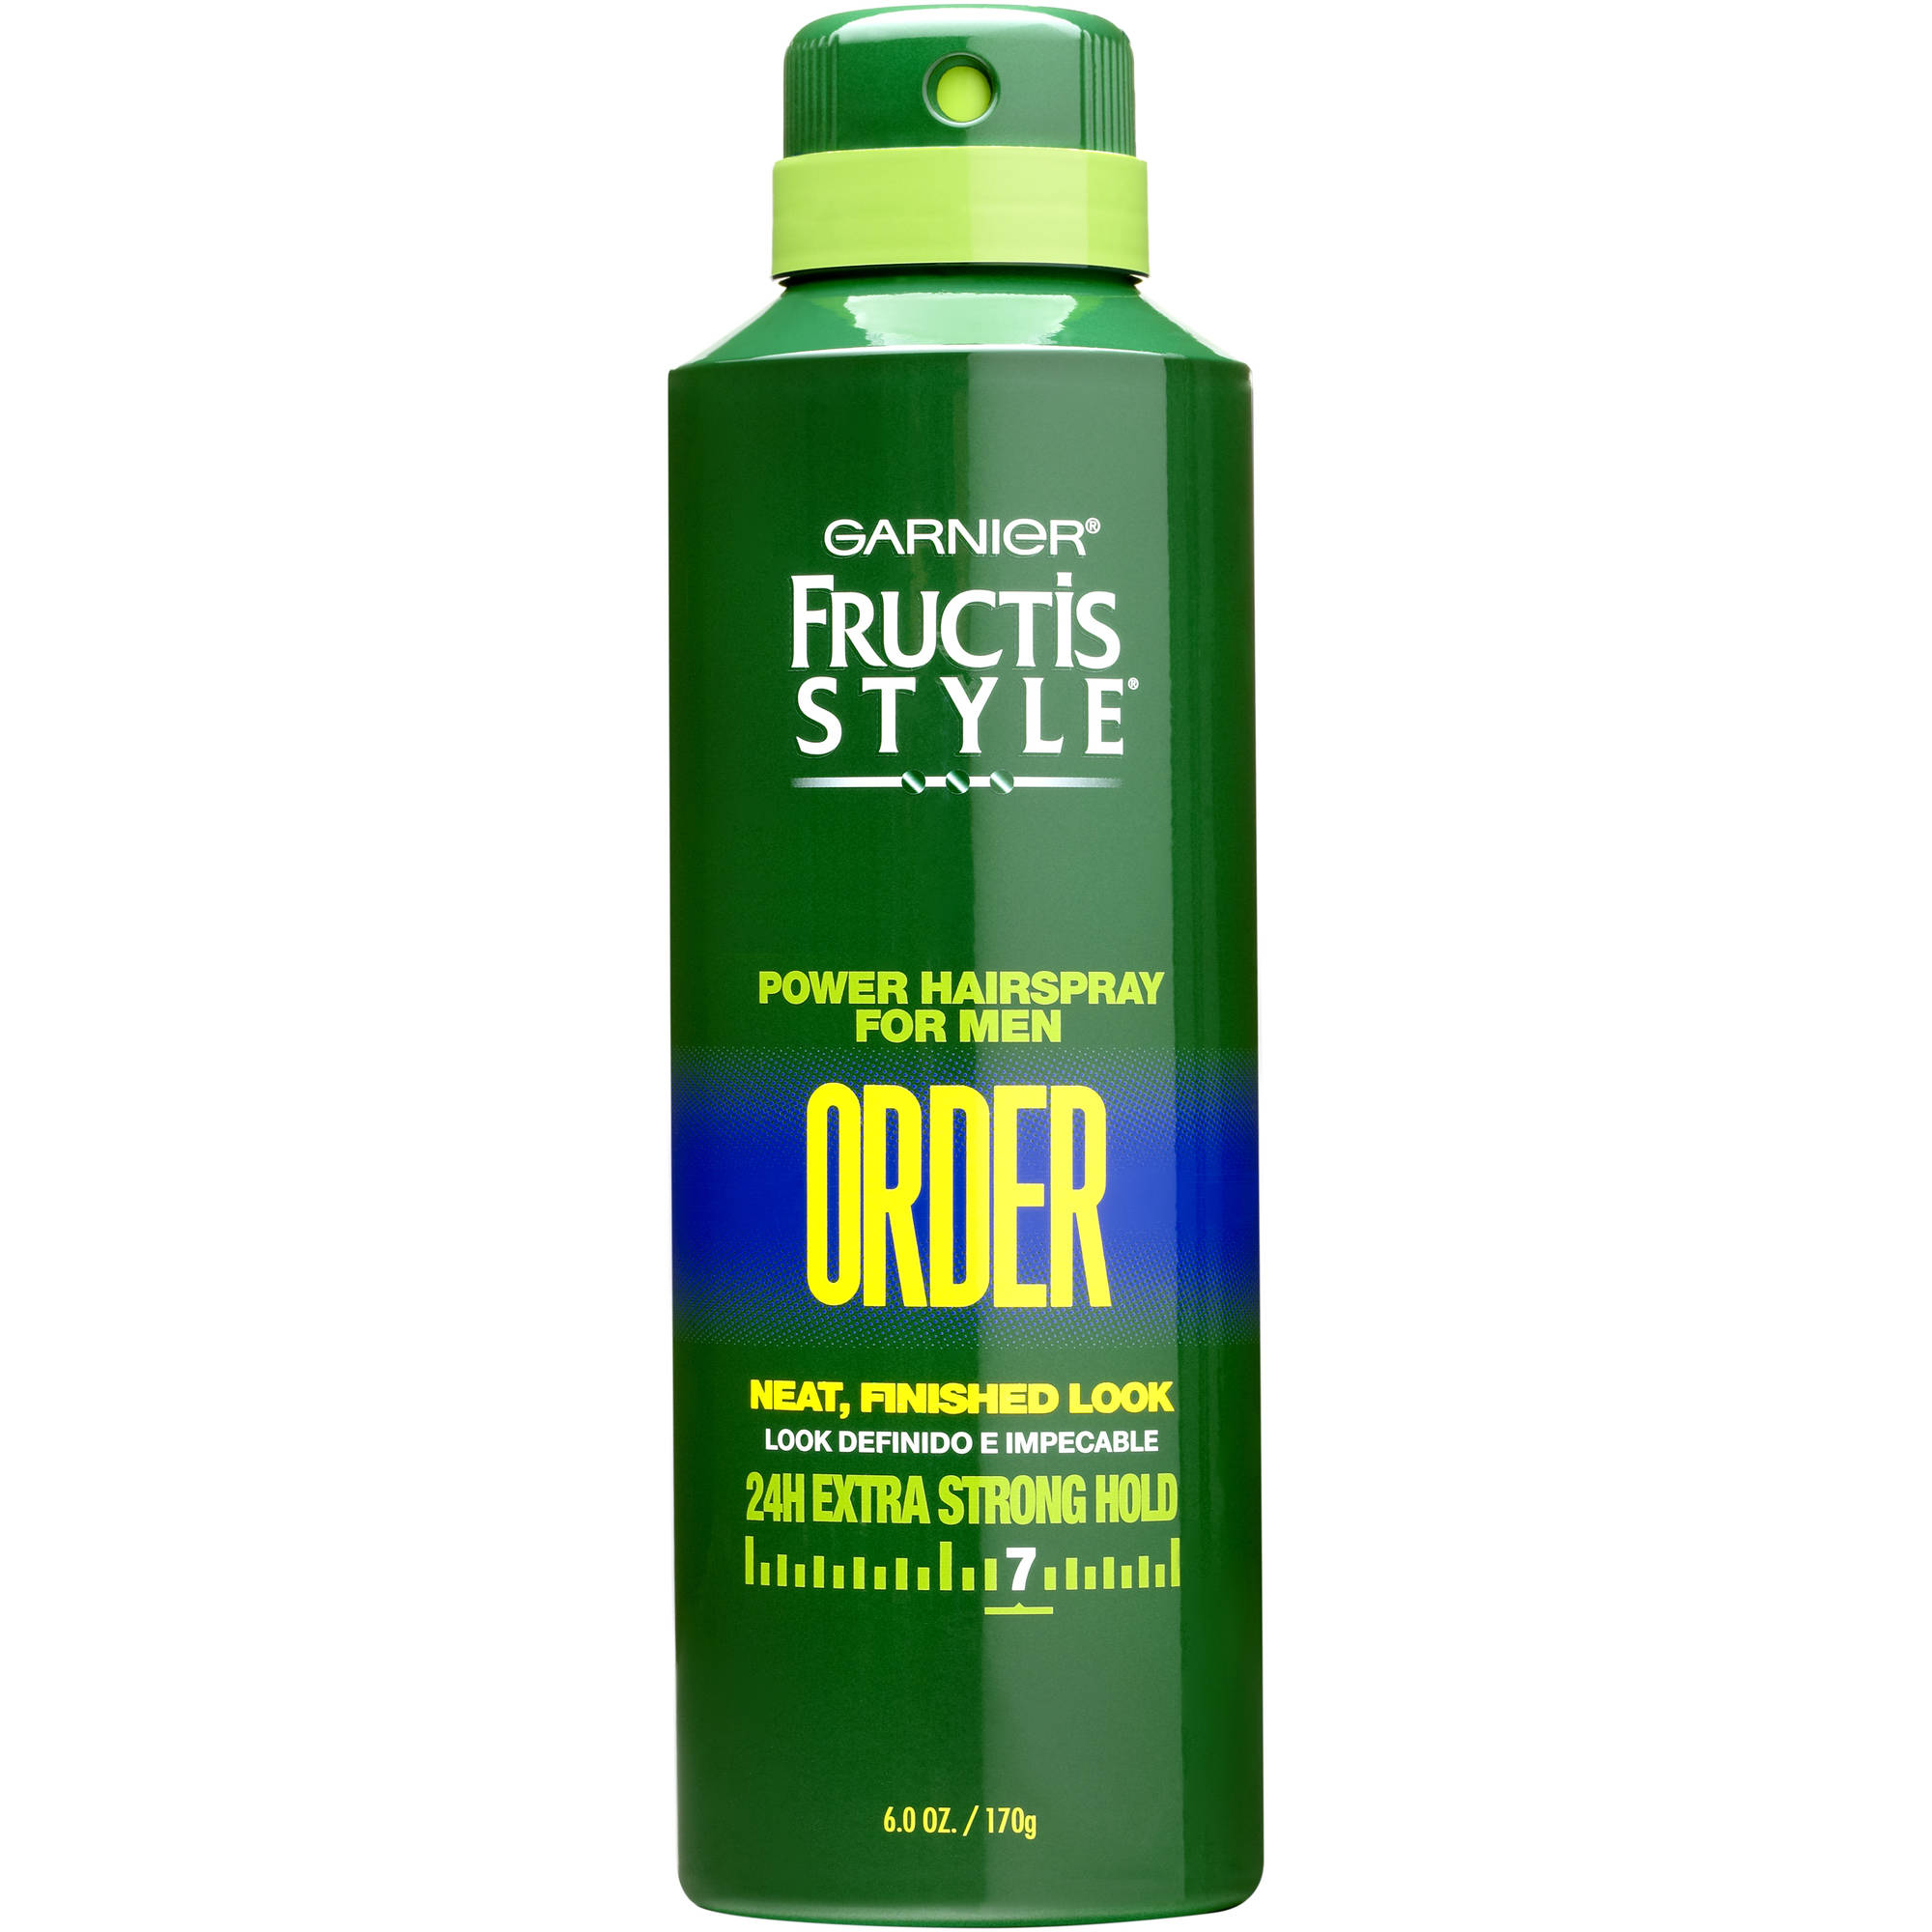 Fructis Style Power Hair Spray For Men Order Extra Strong